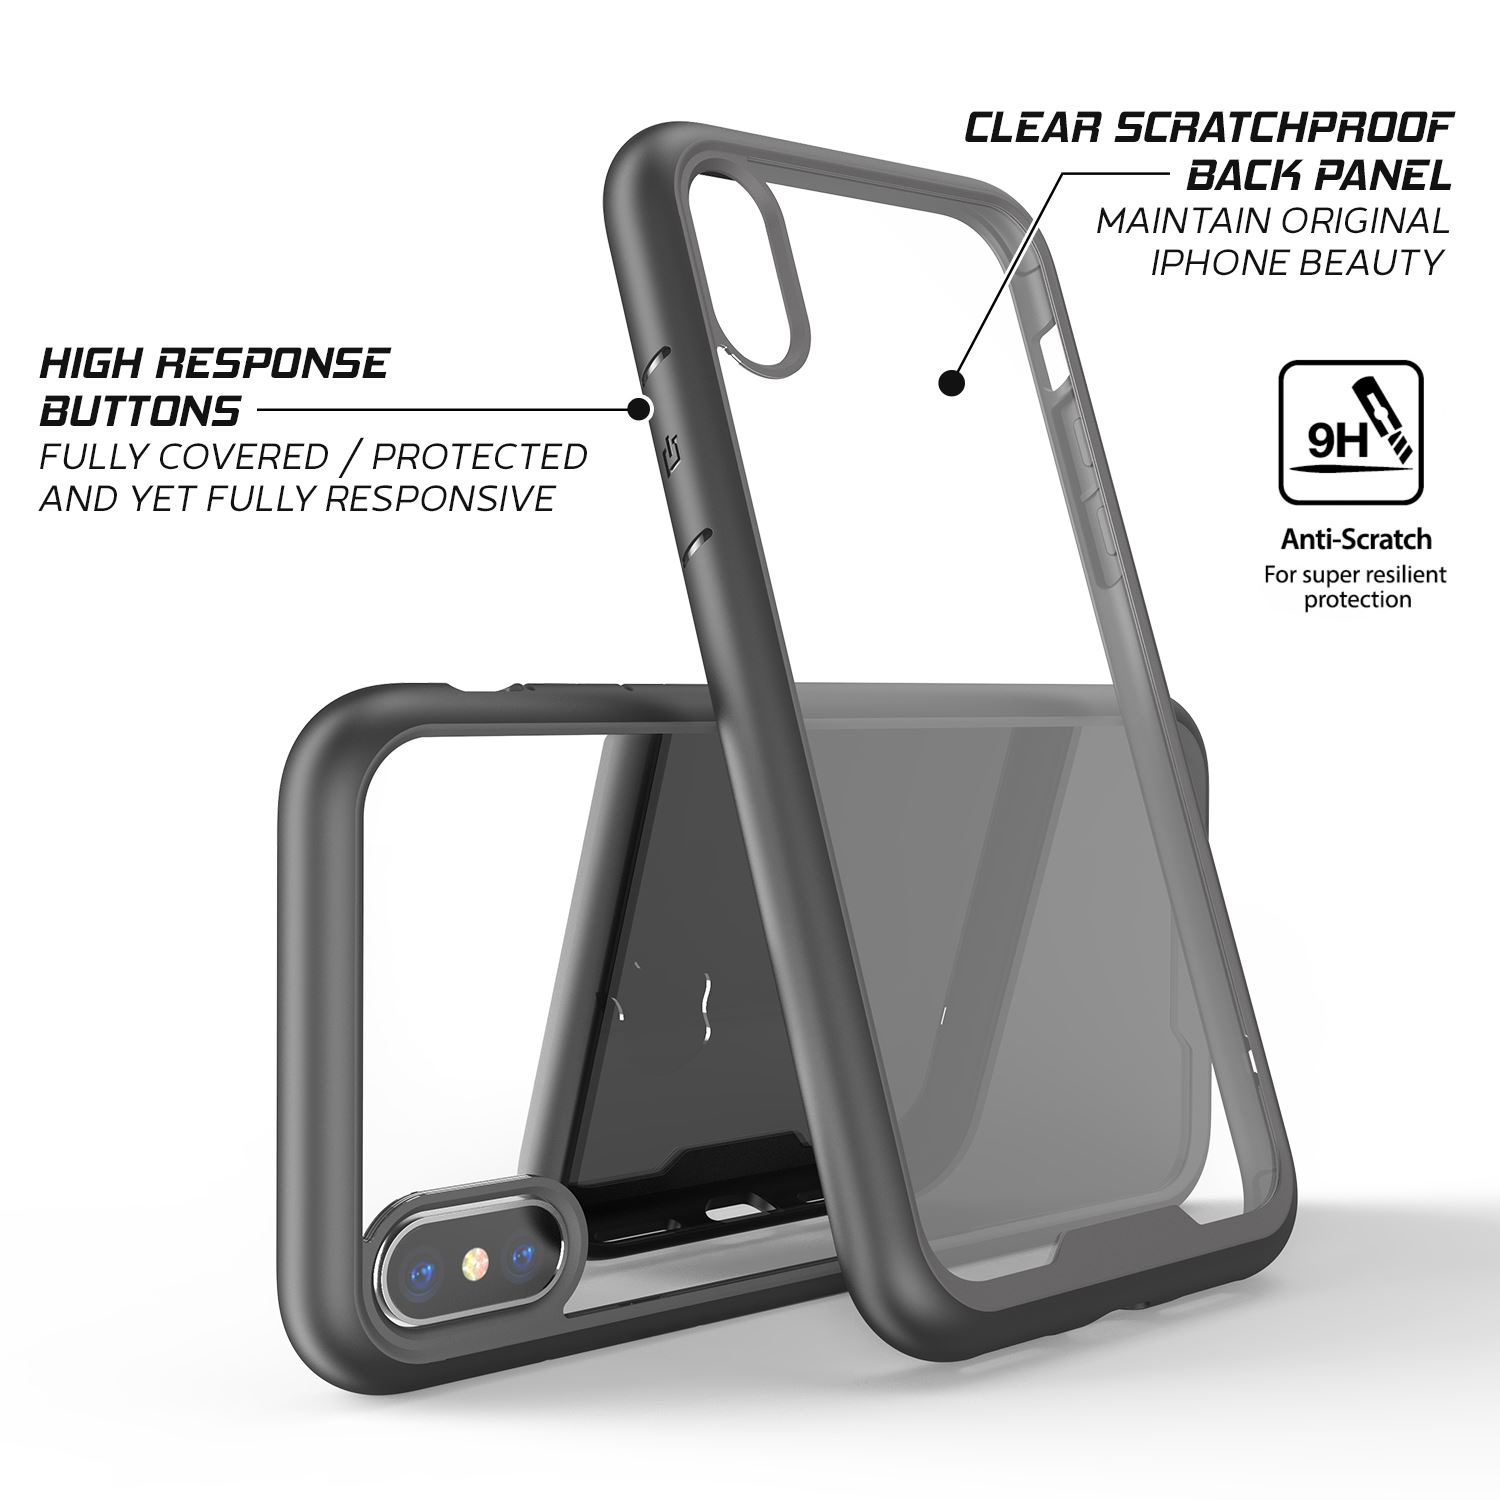 thumbnail 38 - For Apple iPhone XR Xs Max X 8 7 Plus 6 Se 2020 Case Cover Clear Shockproof Thin